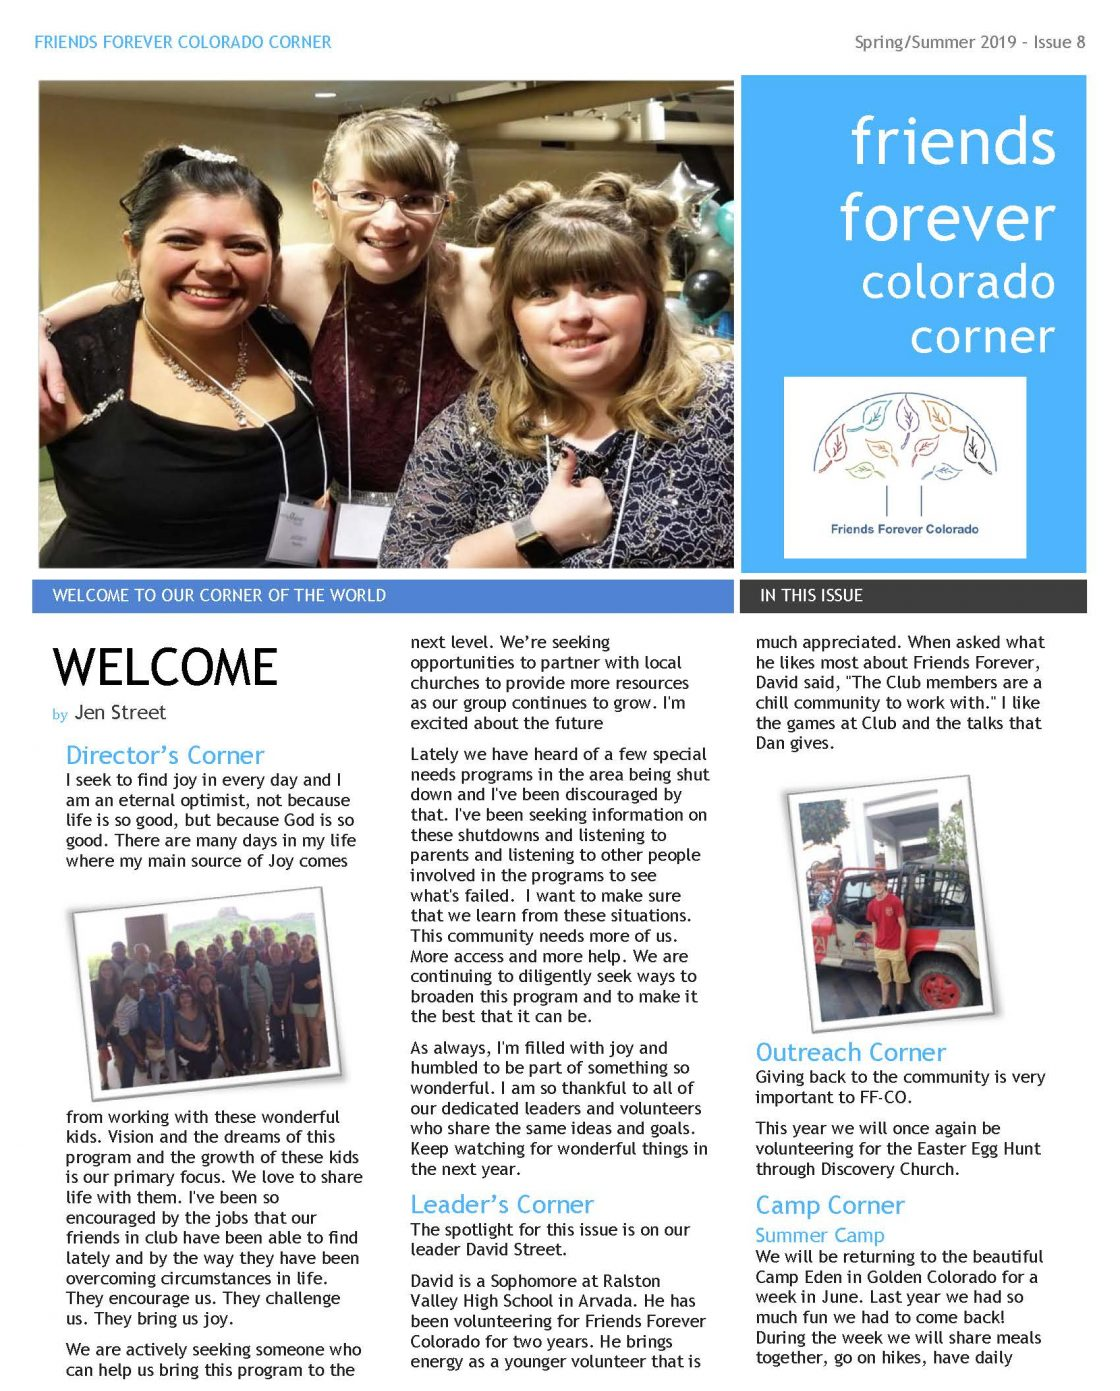 Spring 2019 Newsletter page 1